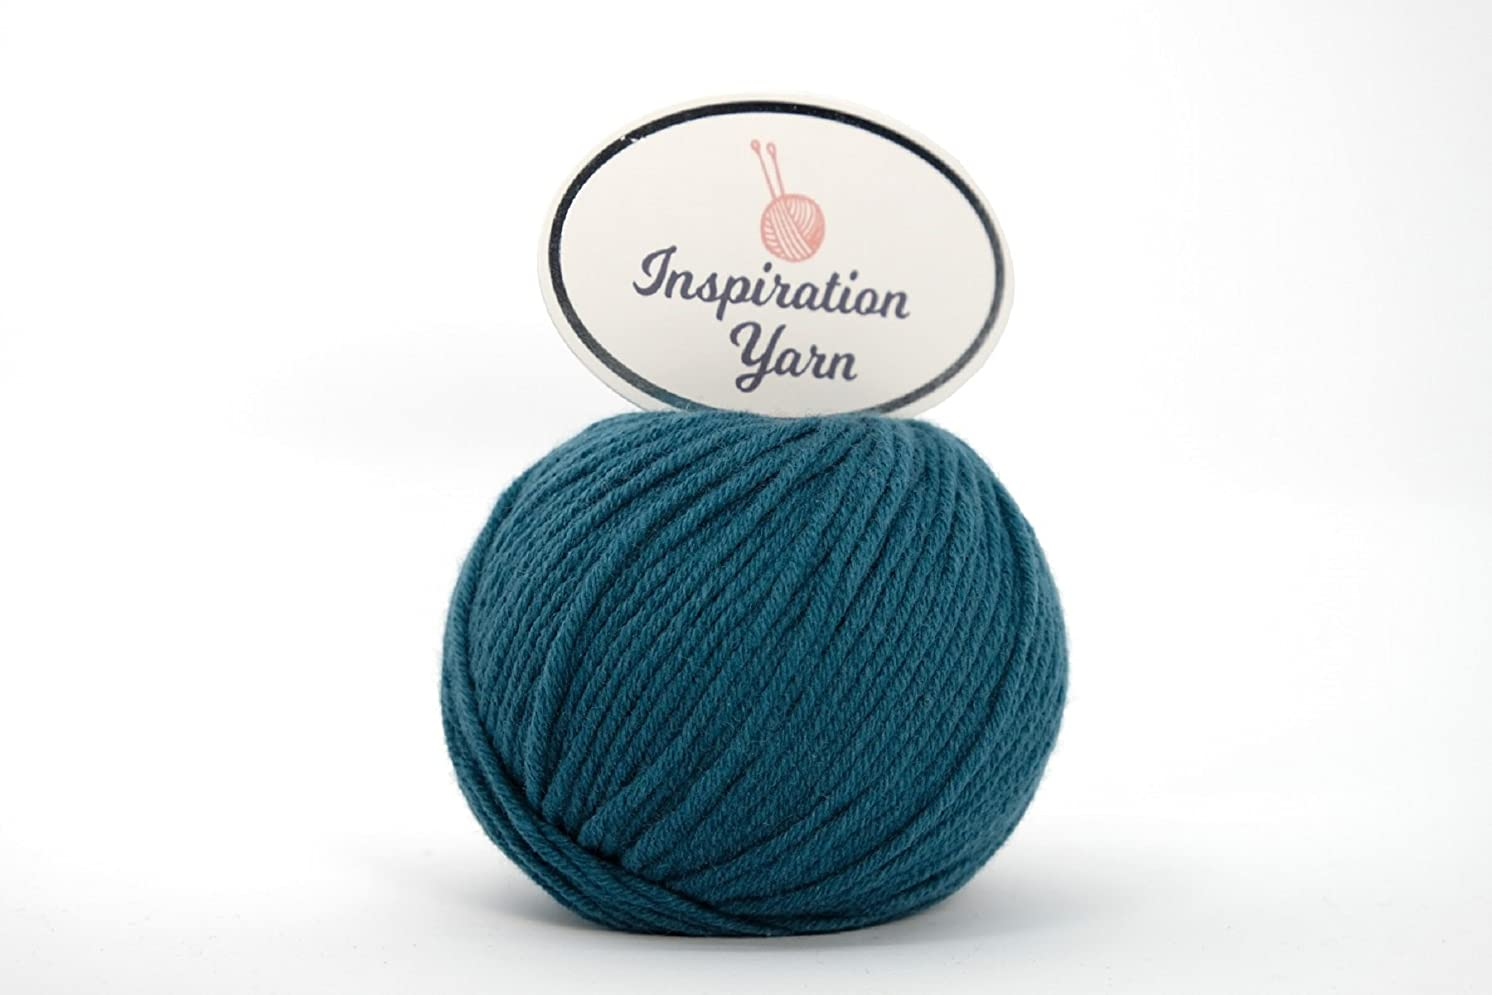 Inspiration Yarn 100% Cashmere Yarn/Needle Size 4mm/63 yards/25 Grams (DK) (Teal, DK)